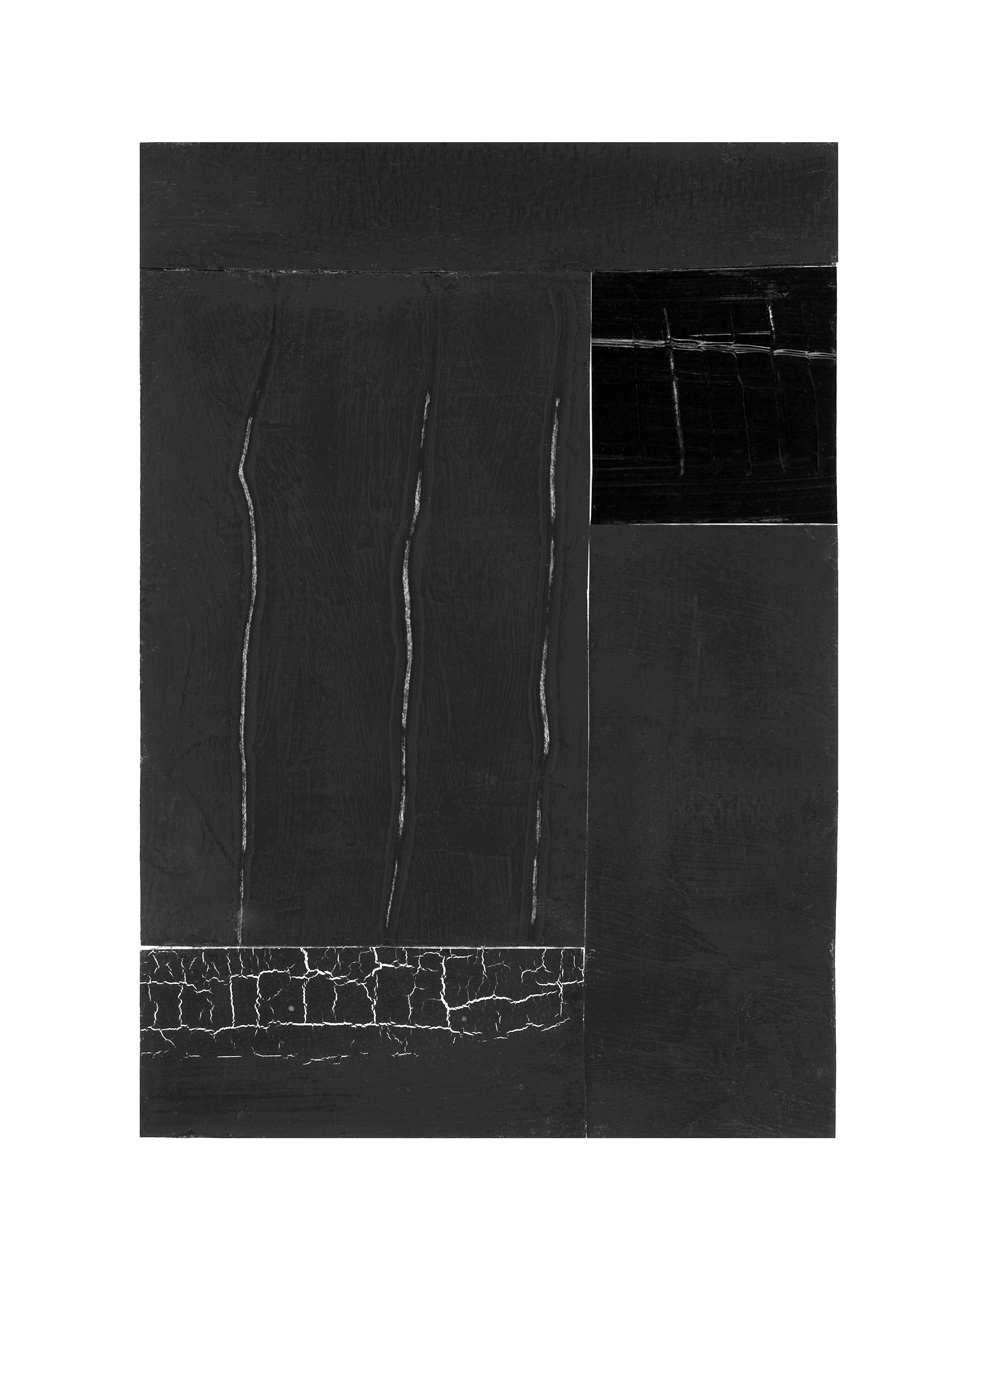 inspired by pierre soulages, no. 4